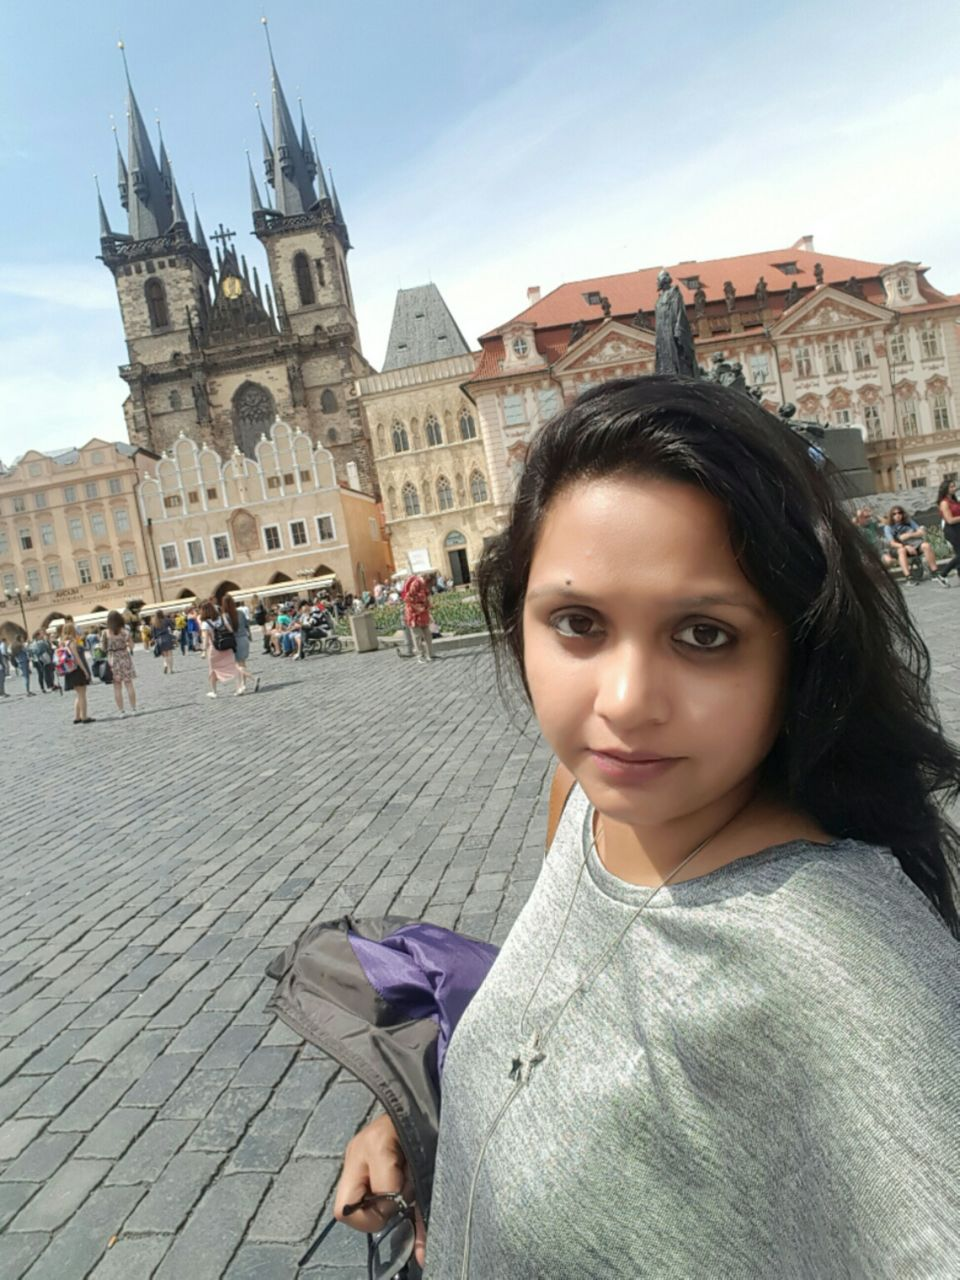 Photos of How I got my Schengen Visa approved and travelled 8 days solo to Europe...My Journey 1/1 by Freesoul